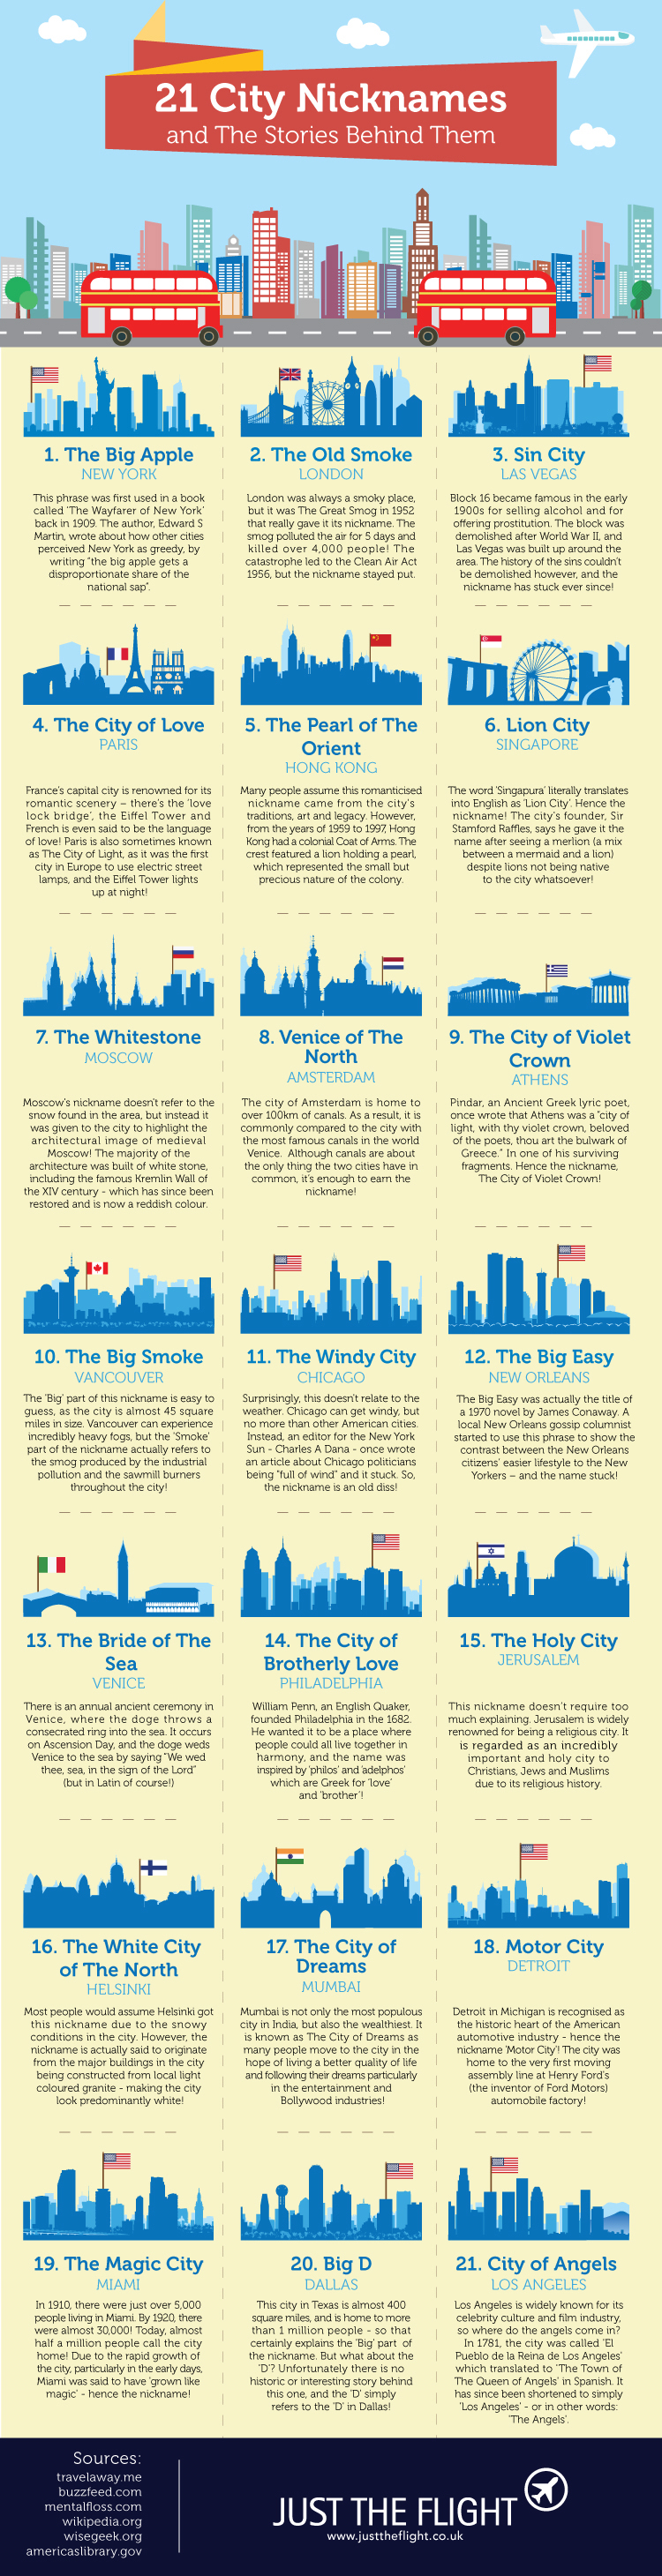 The stories behind the nicknames of the world's great cities